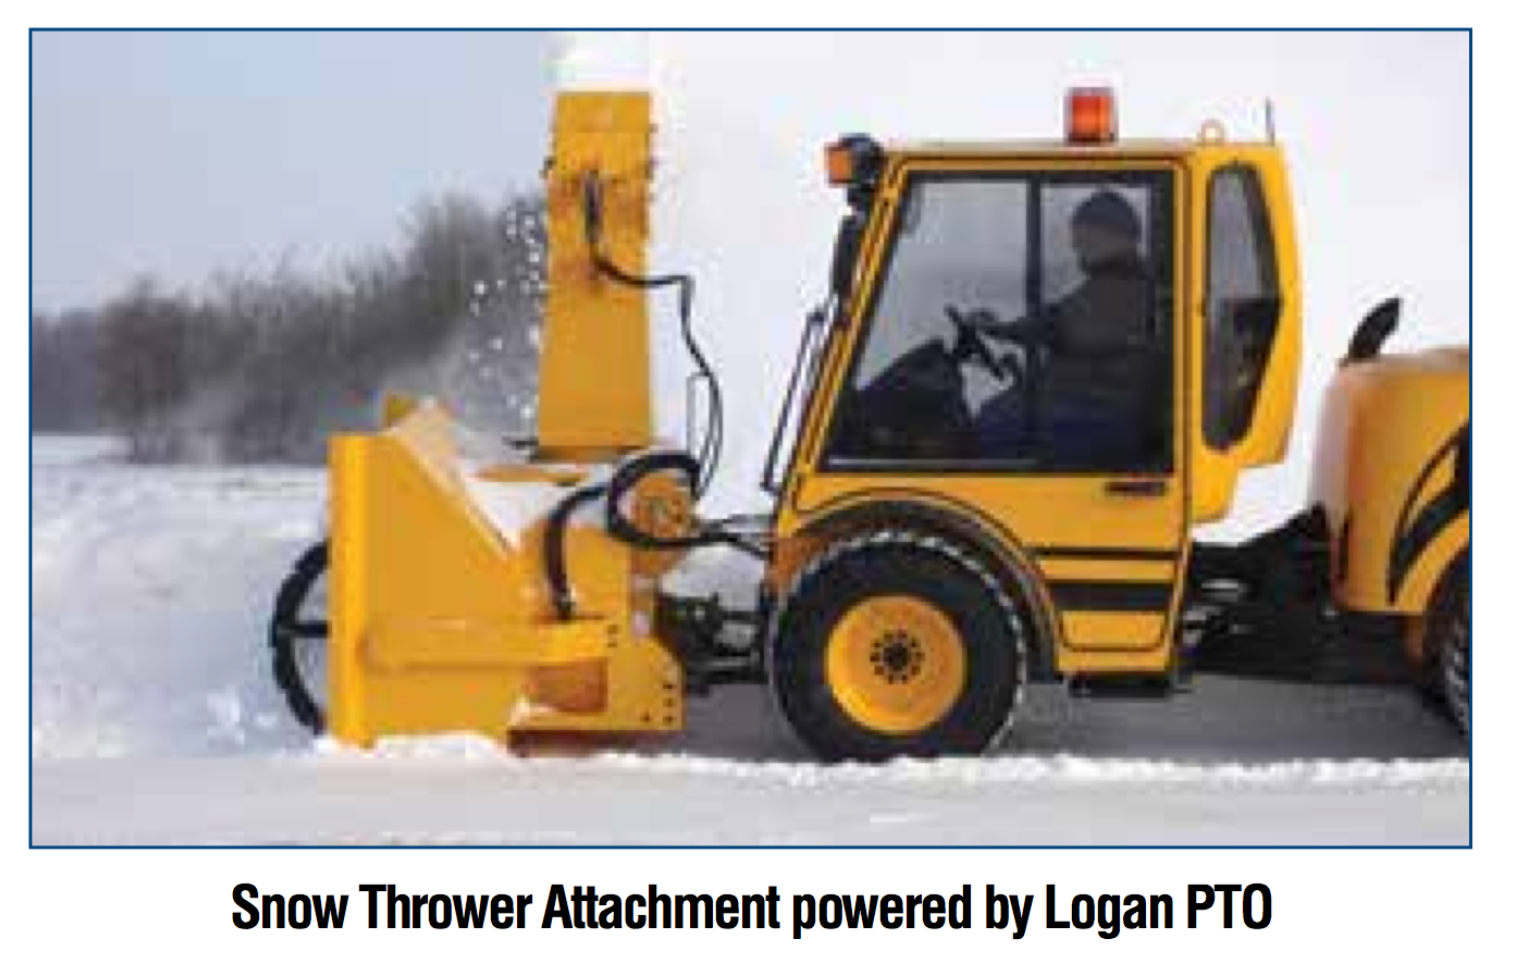 Snow Thrower Attachment powered byt Logan PTO